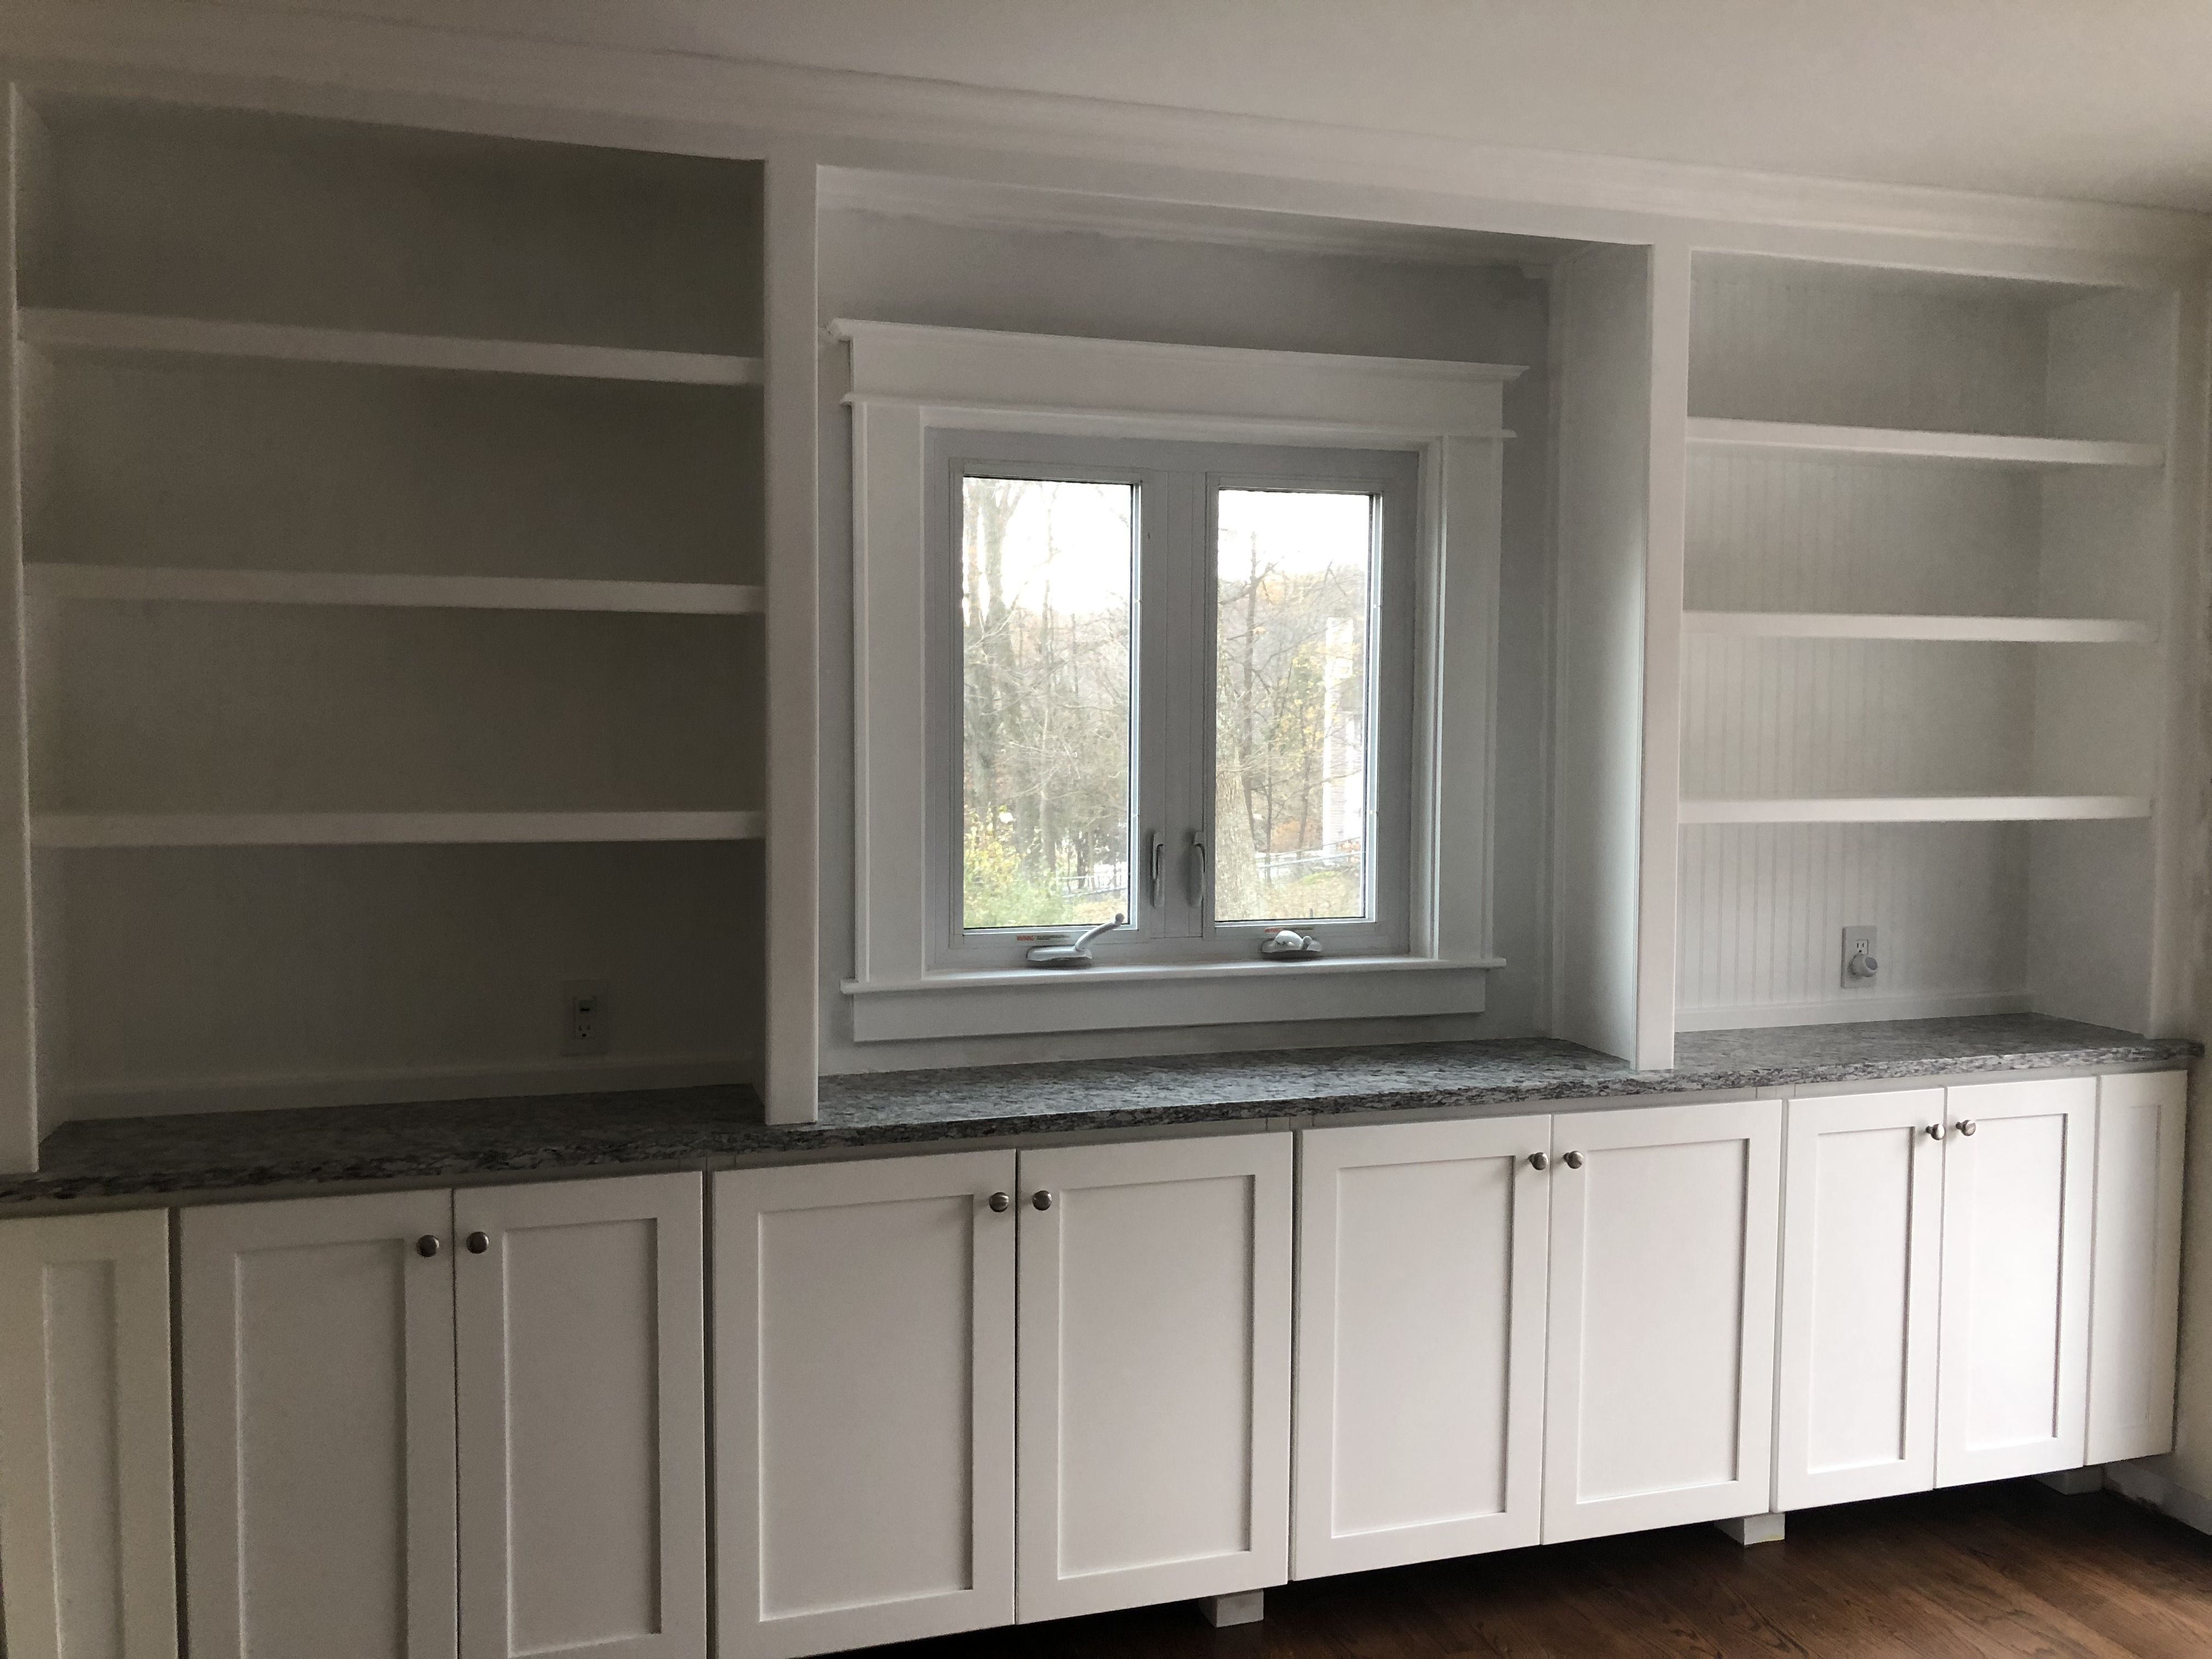 Built Ins Over Baseboard Heating Built In Cupboards Living Room Living Room Built Ins Baseboard Heating